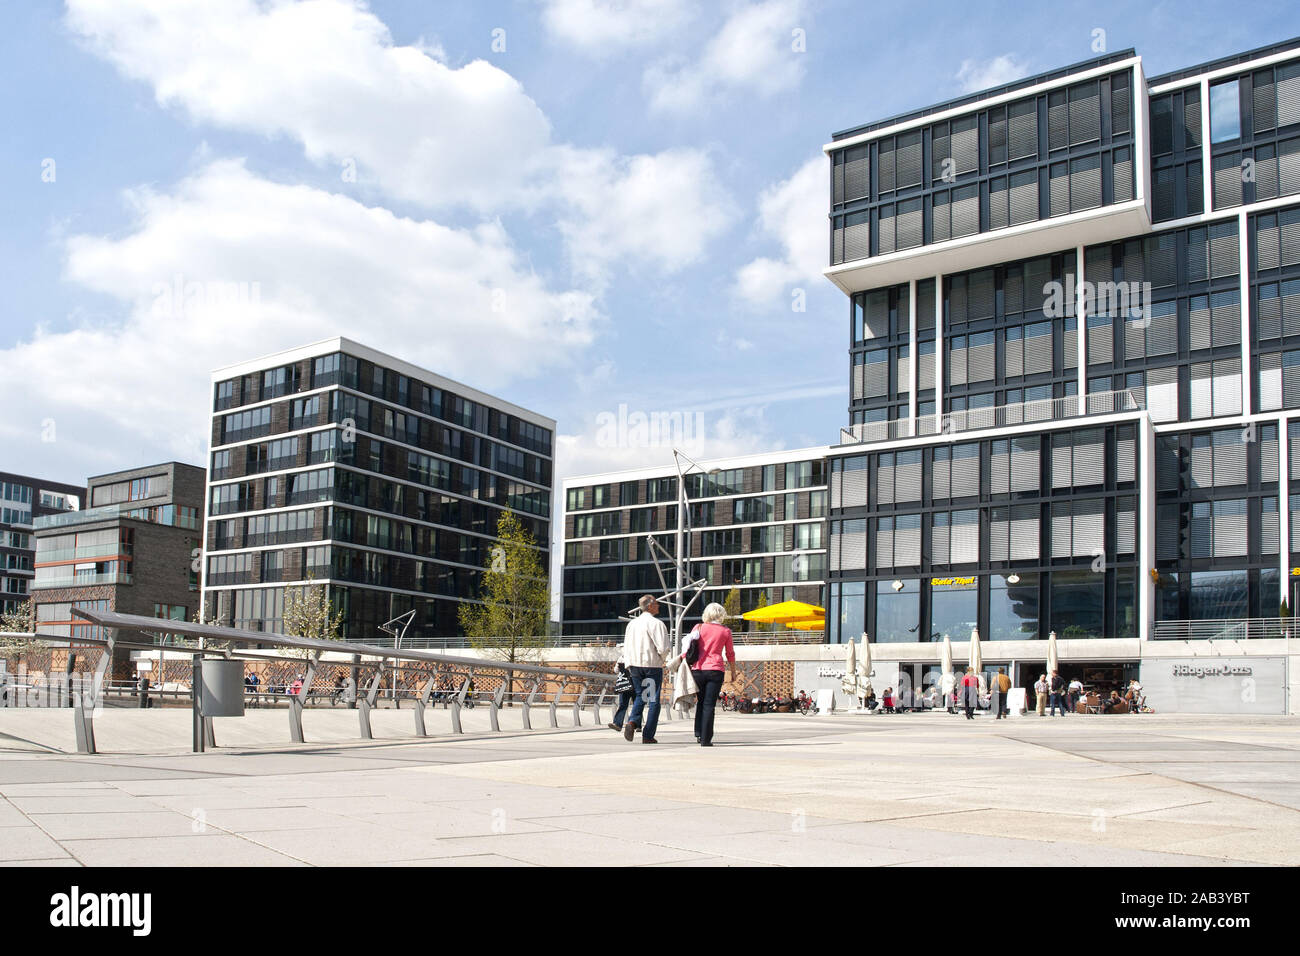 Hamburg Architektur Moderne Architektur In Der Hafencity In Hamburg |modern Architecture In The Hafencity In Hamburg| Stock Photo - Alamy